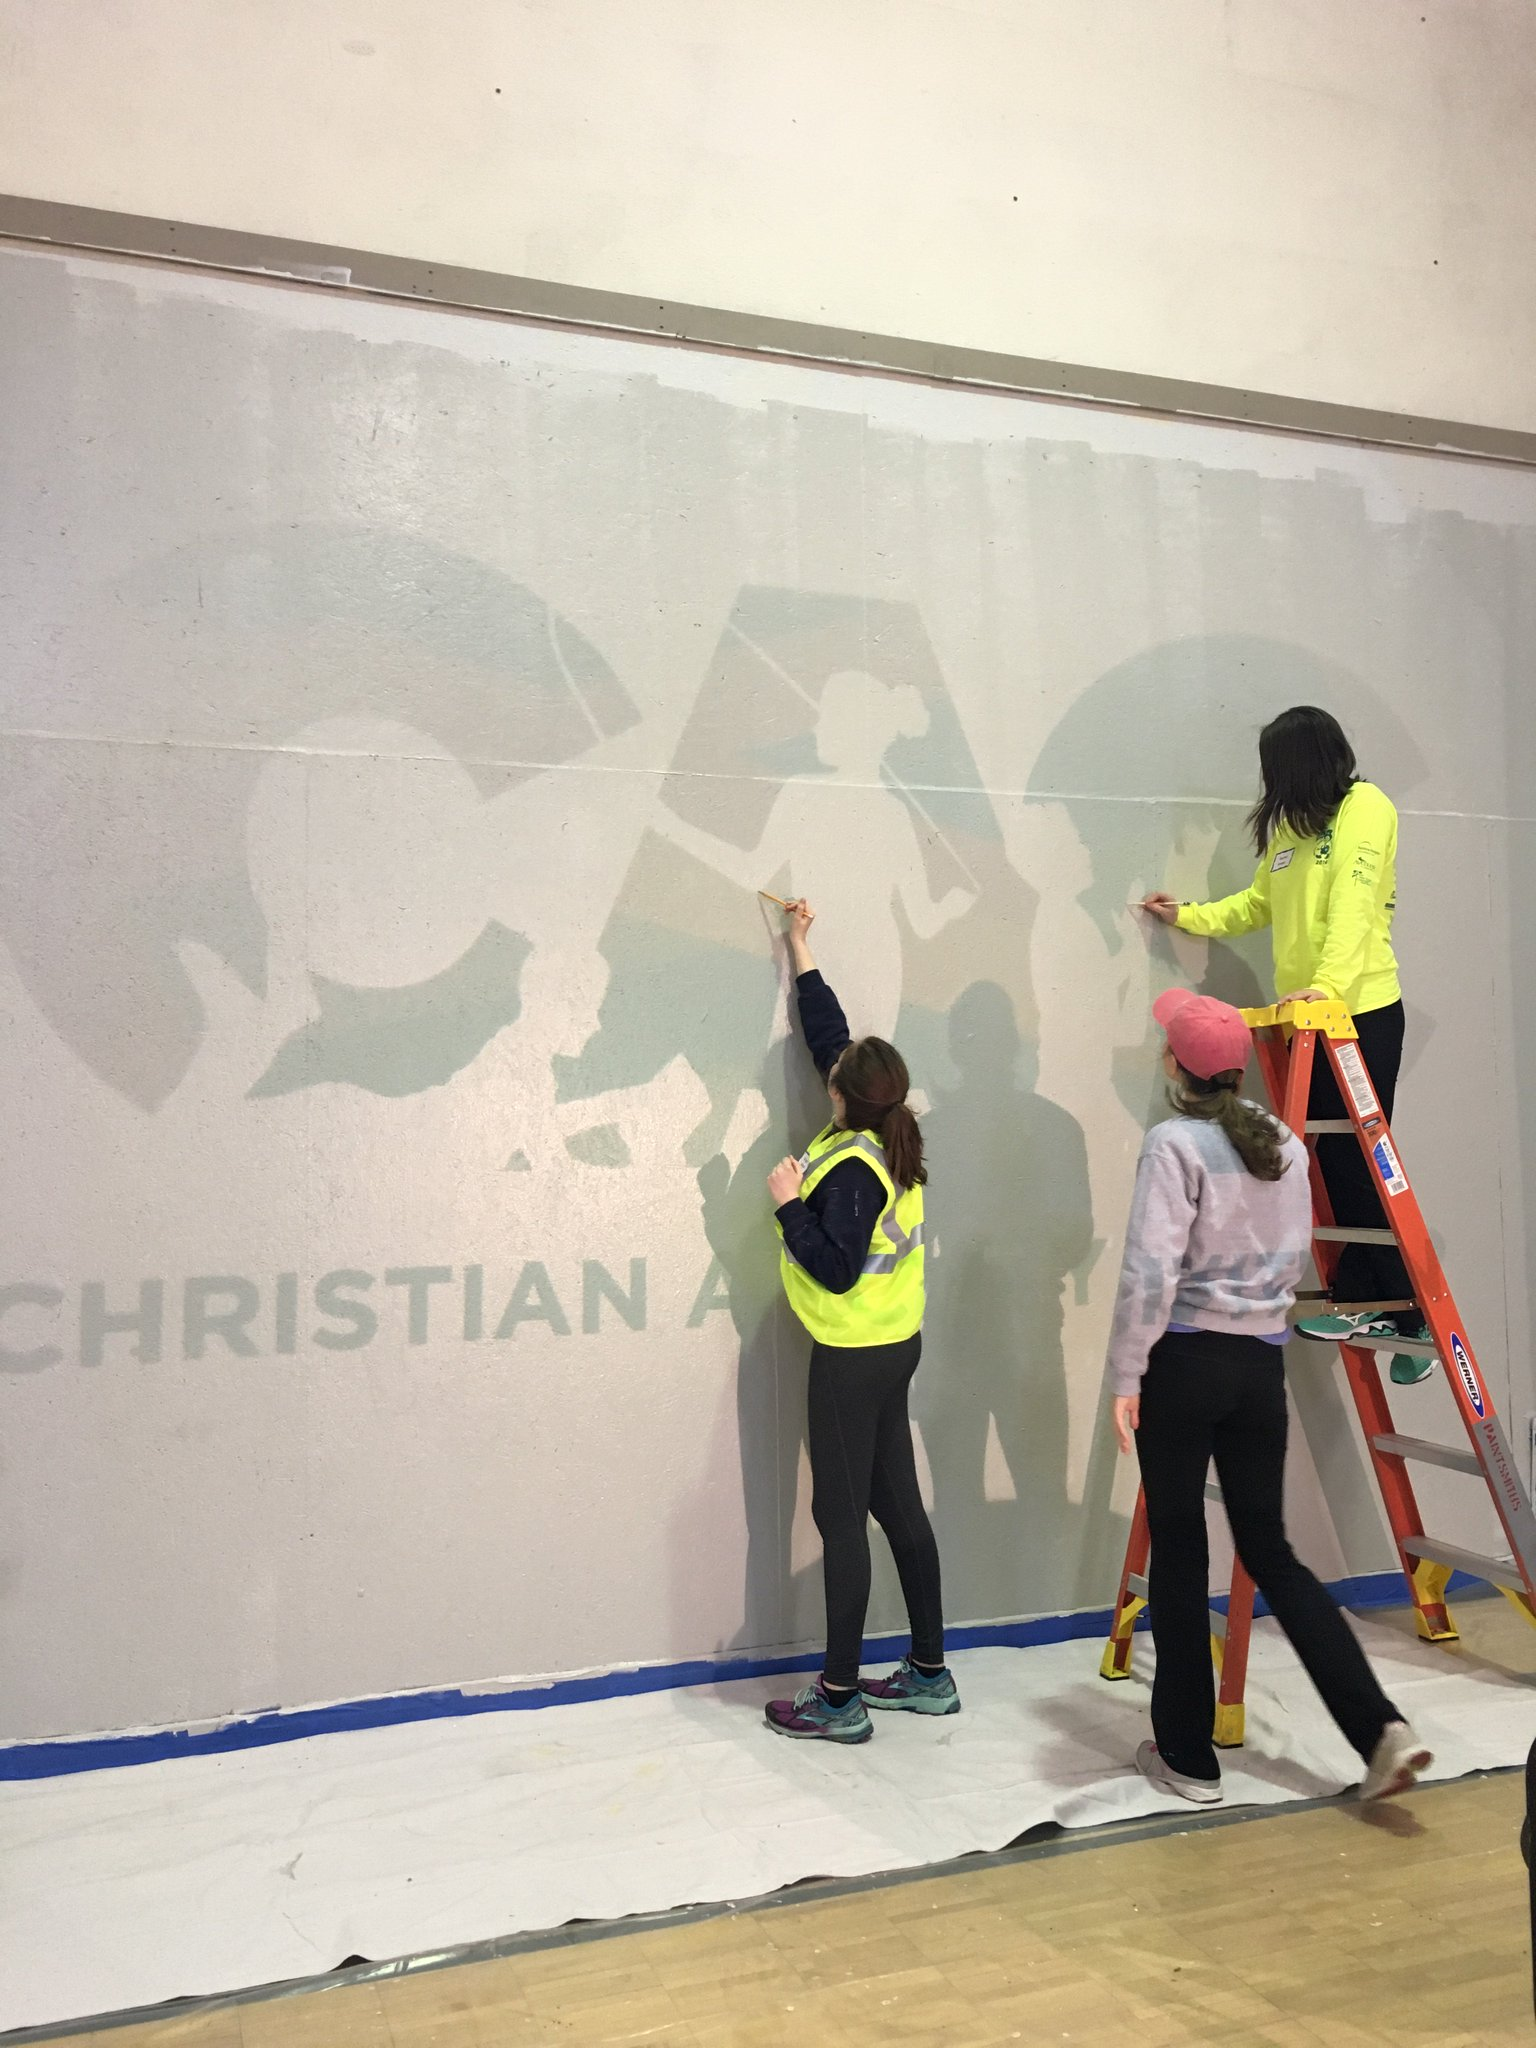 #ServiceDay at the Christian Activity Center! Logo in the gym is getting sketched out! https://t.co/5RIV6YOwDR